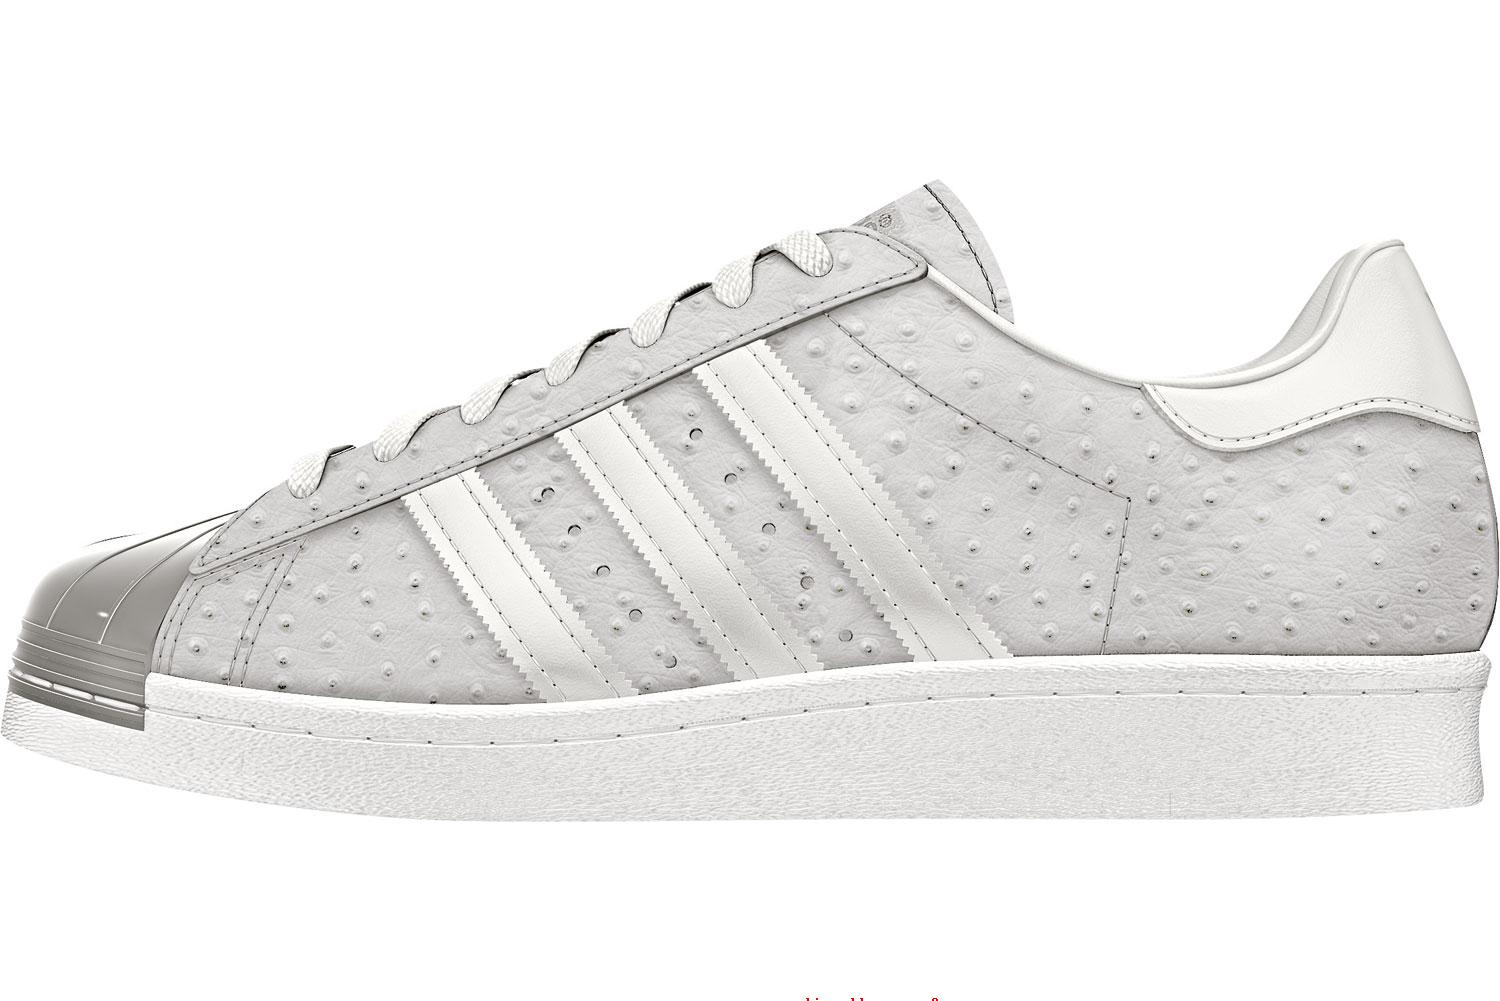 Toe Superstar Adidas 80s W Chaussures XZPkiuTO